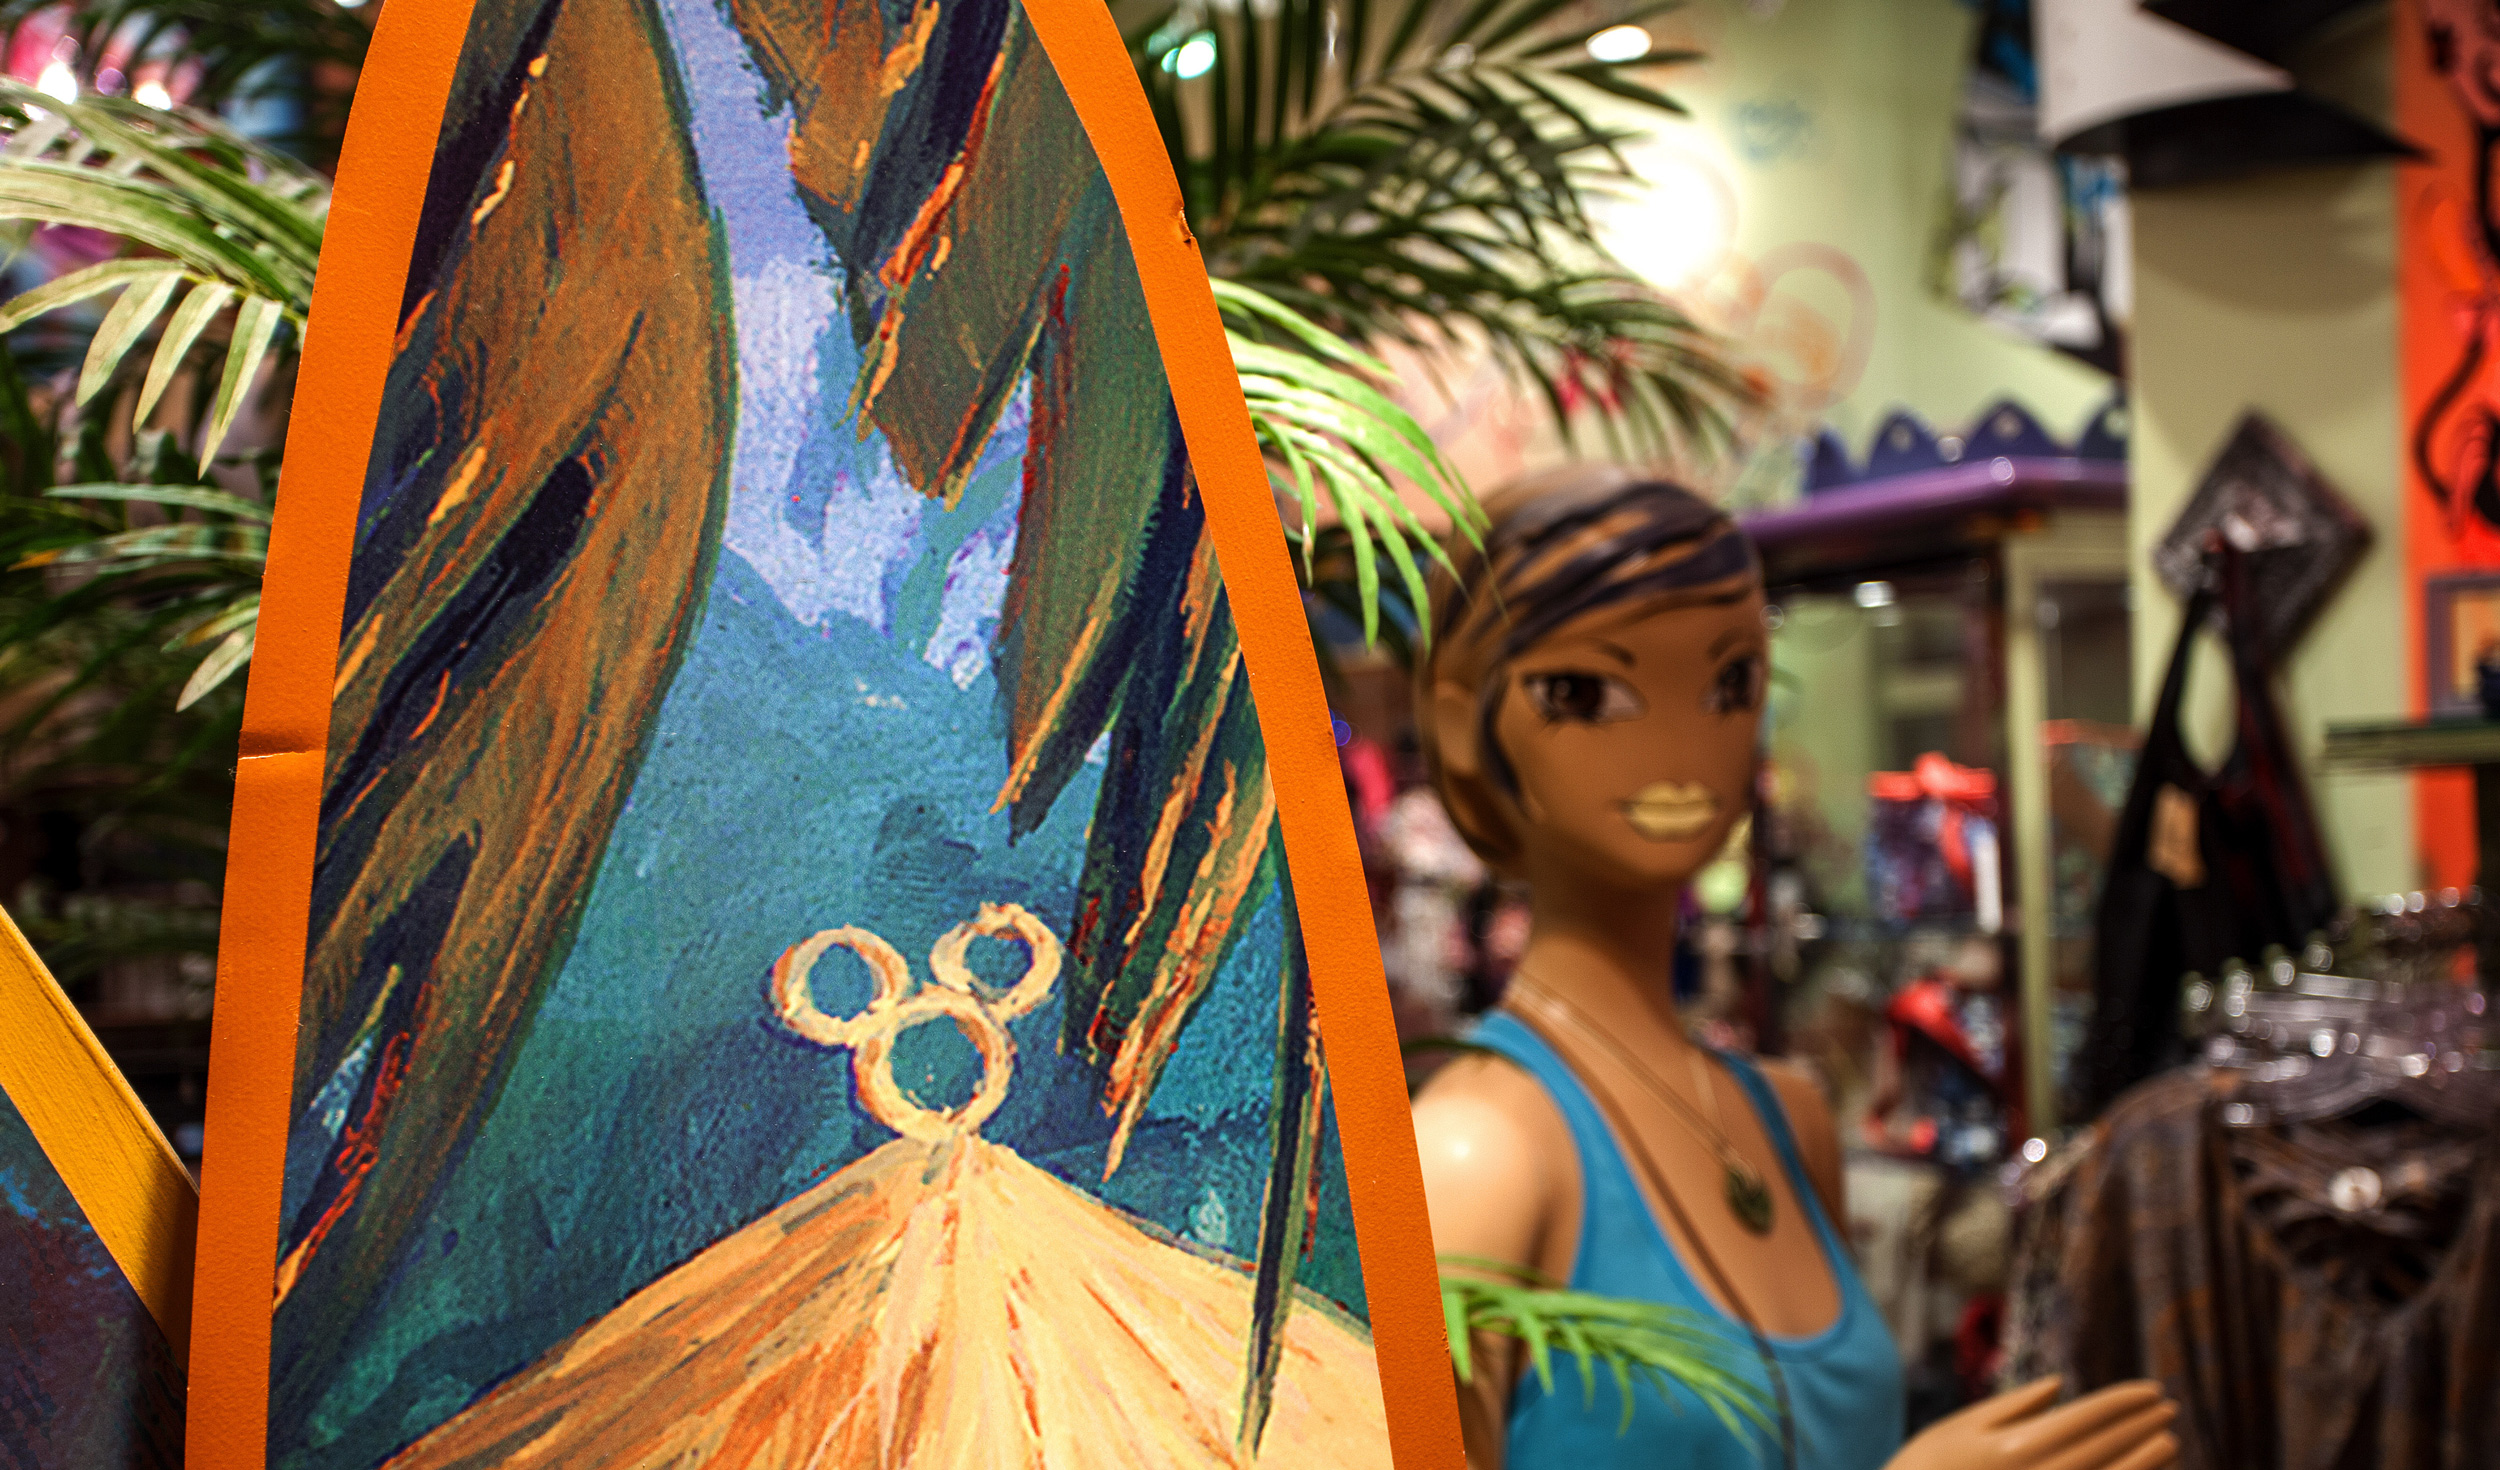 Fashionable clothing and chic accessories on display at Tren-D, located in the Downtown Disney area